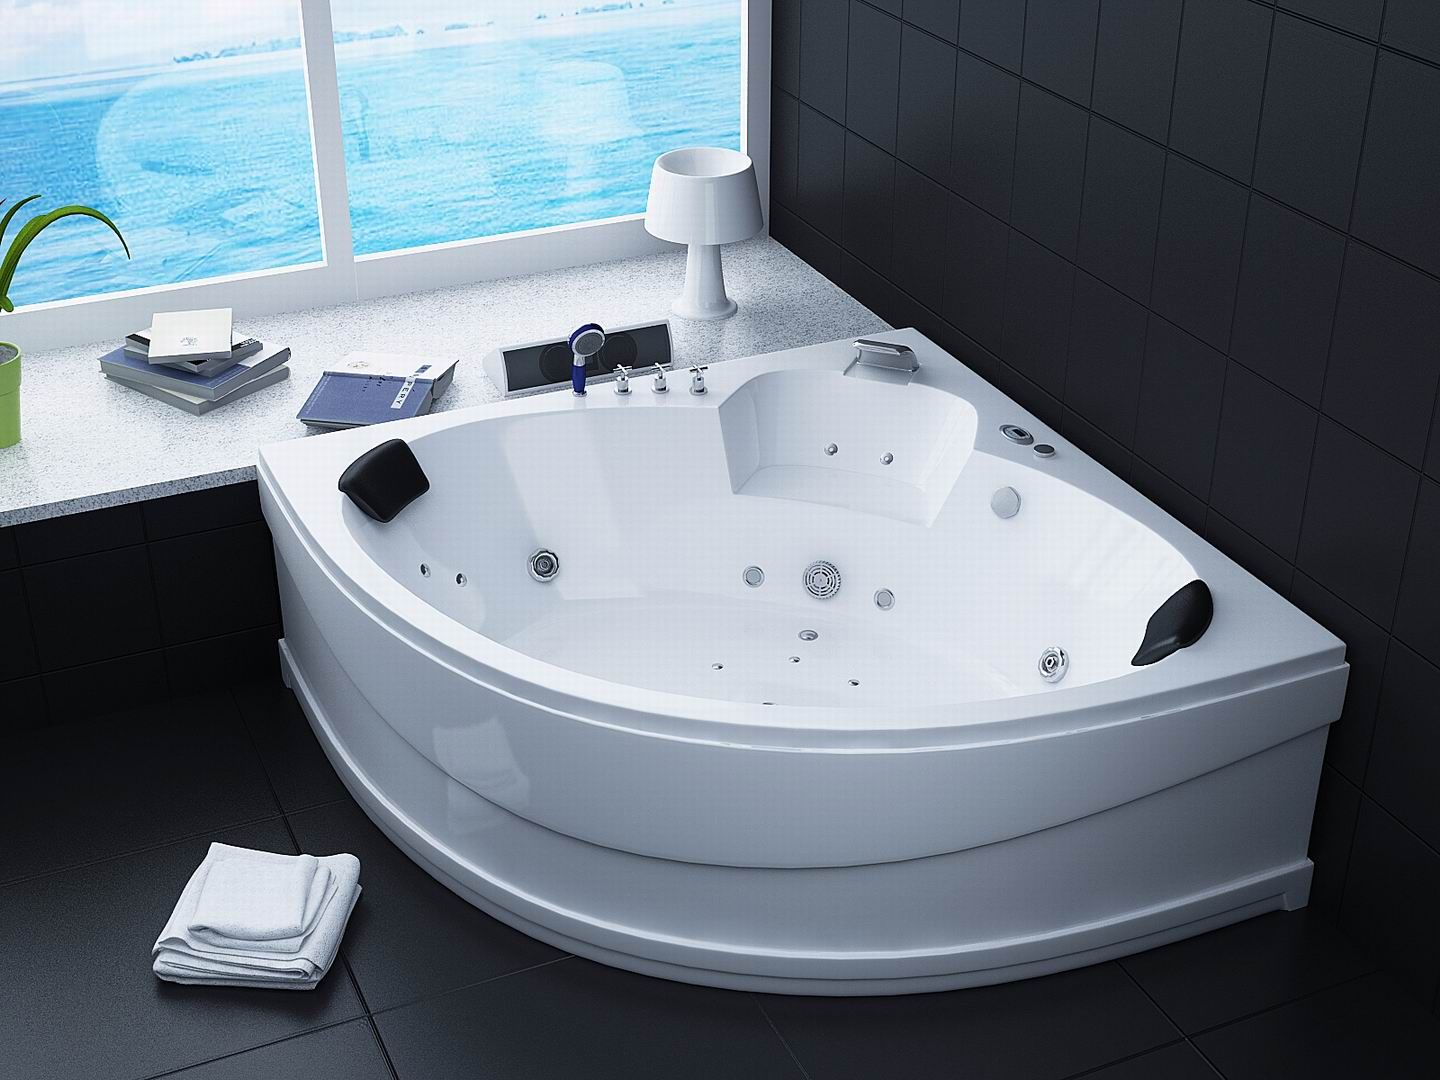 Bathroom Jacuzzi Tub bathtubs | china jacuzzi bathtub (mt-nr1801) - large image for